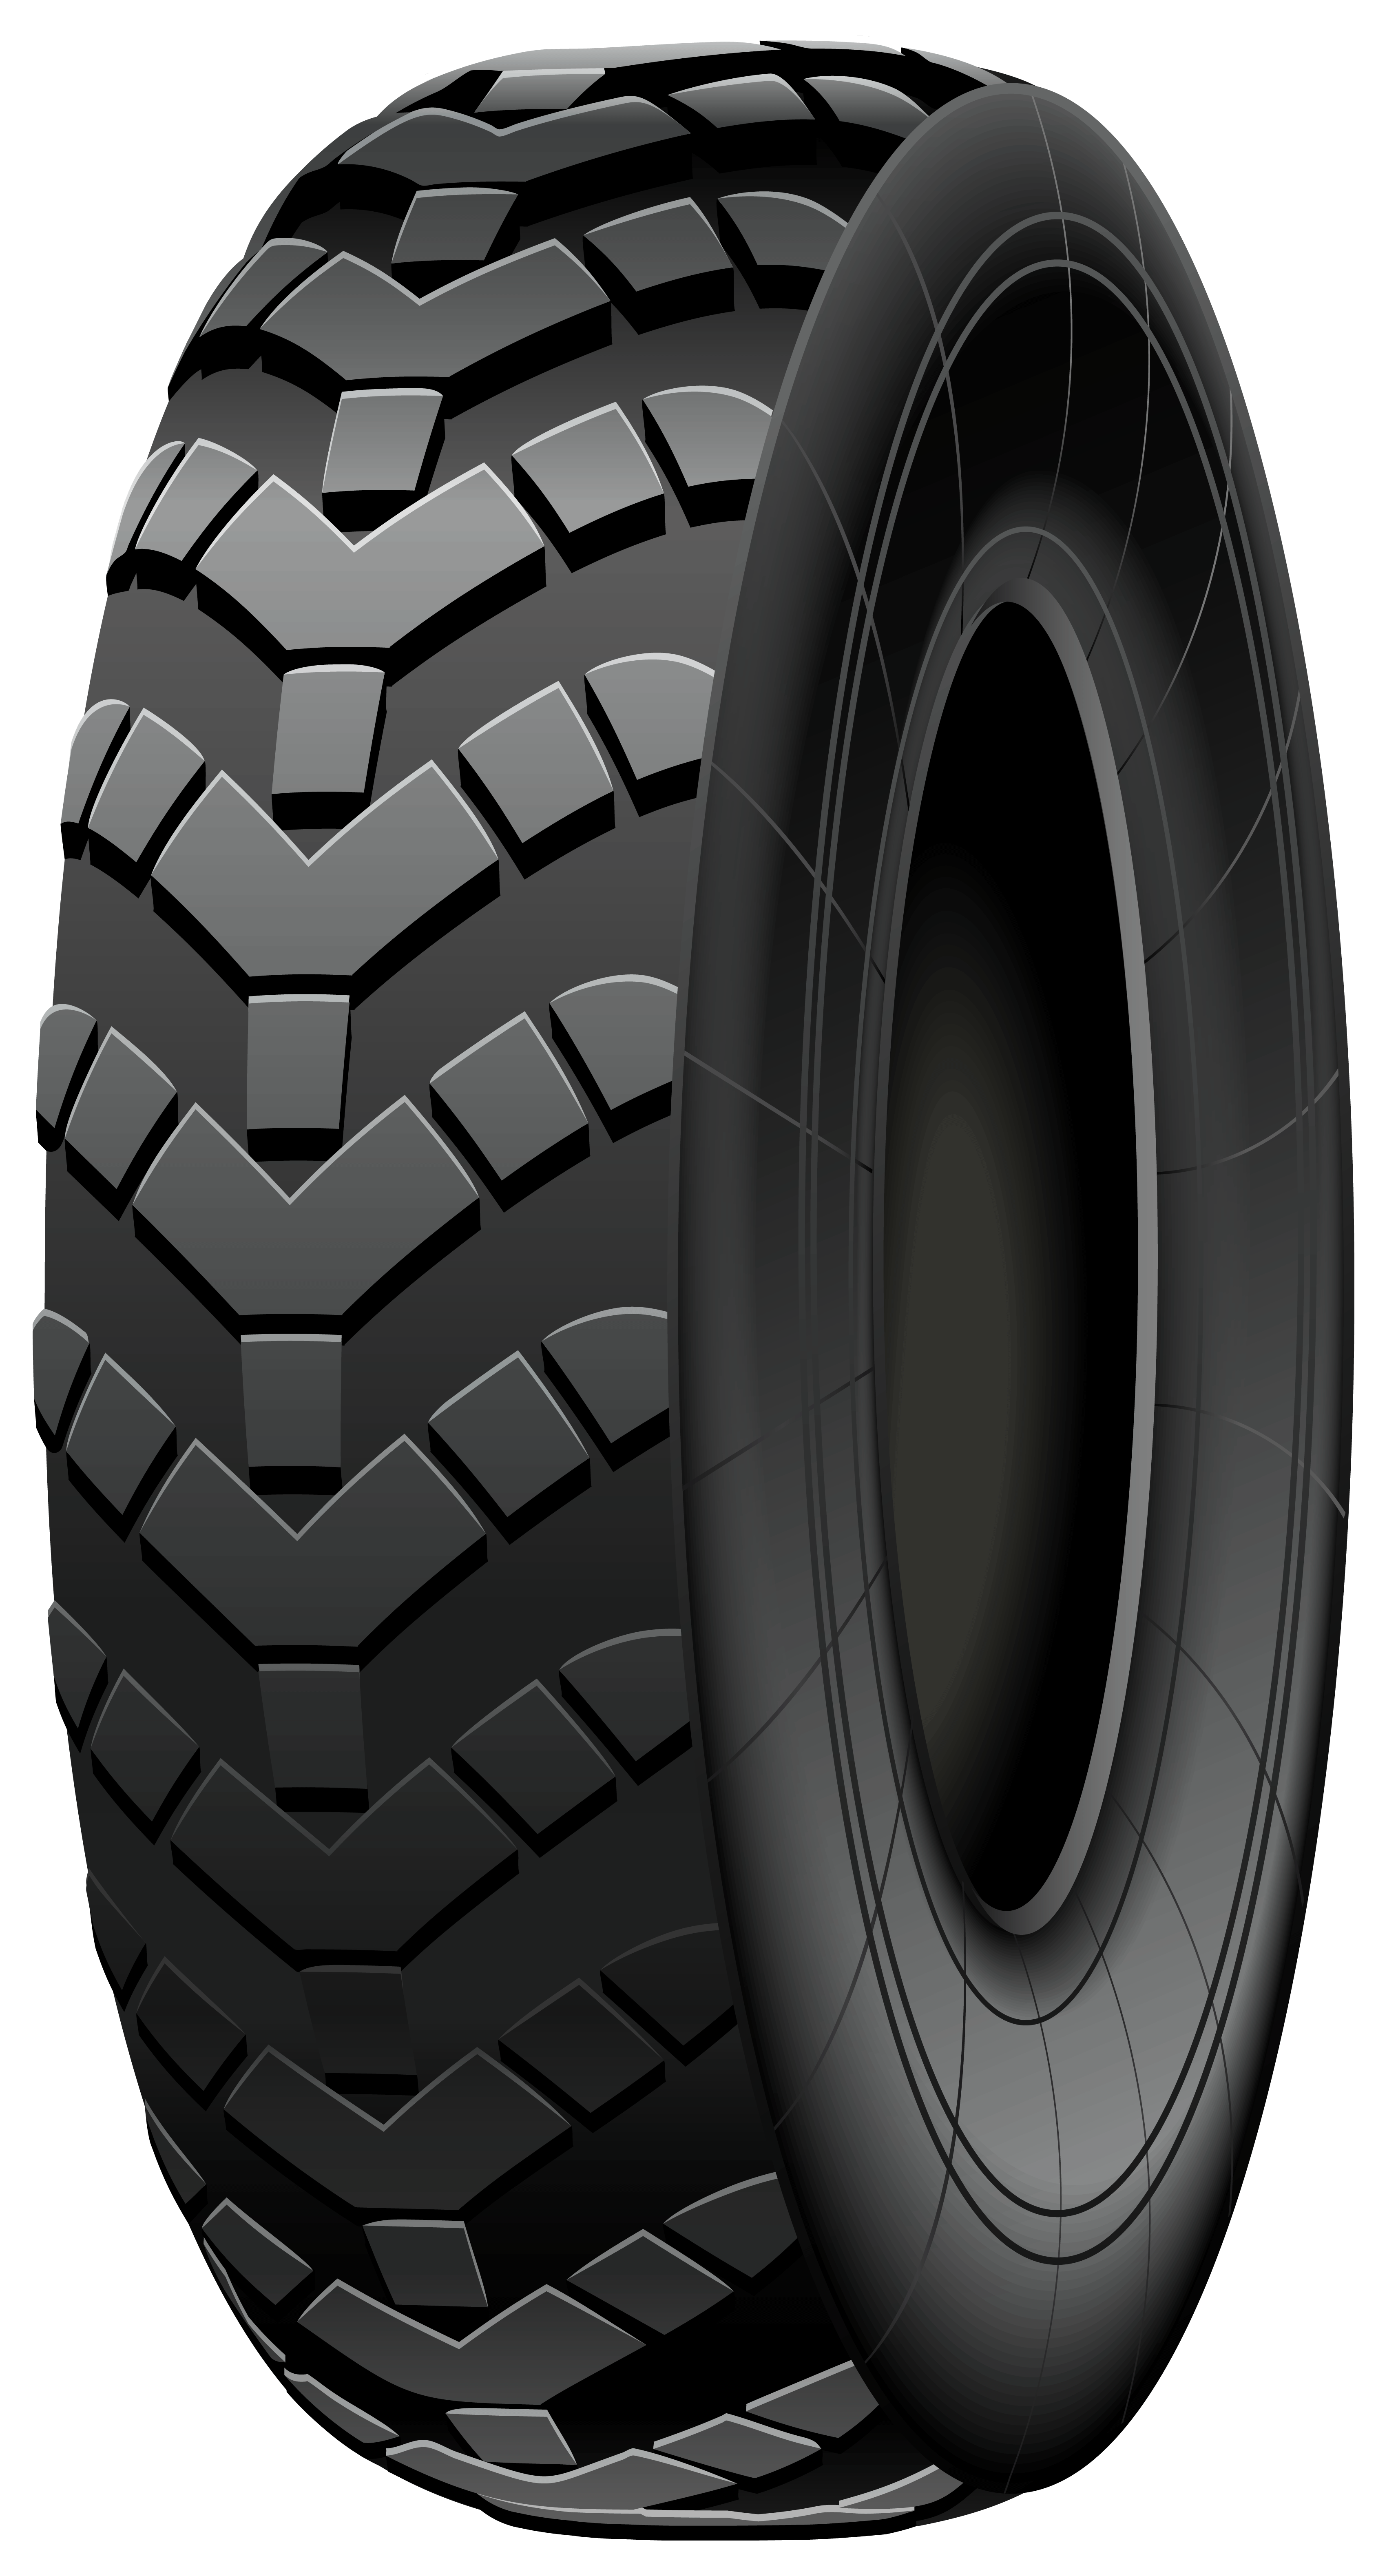 Truck Tire Clipart Car Tyre Hd Png Transparent Car Tyre Hd Png Images Pluspng